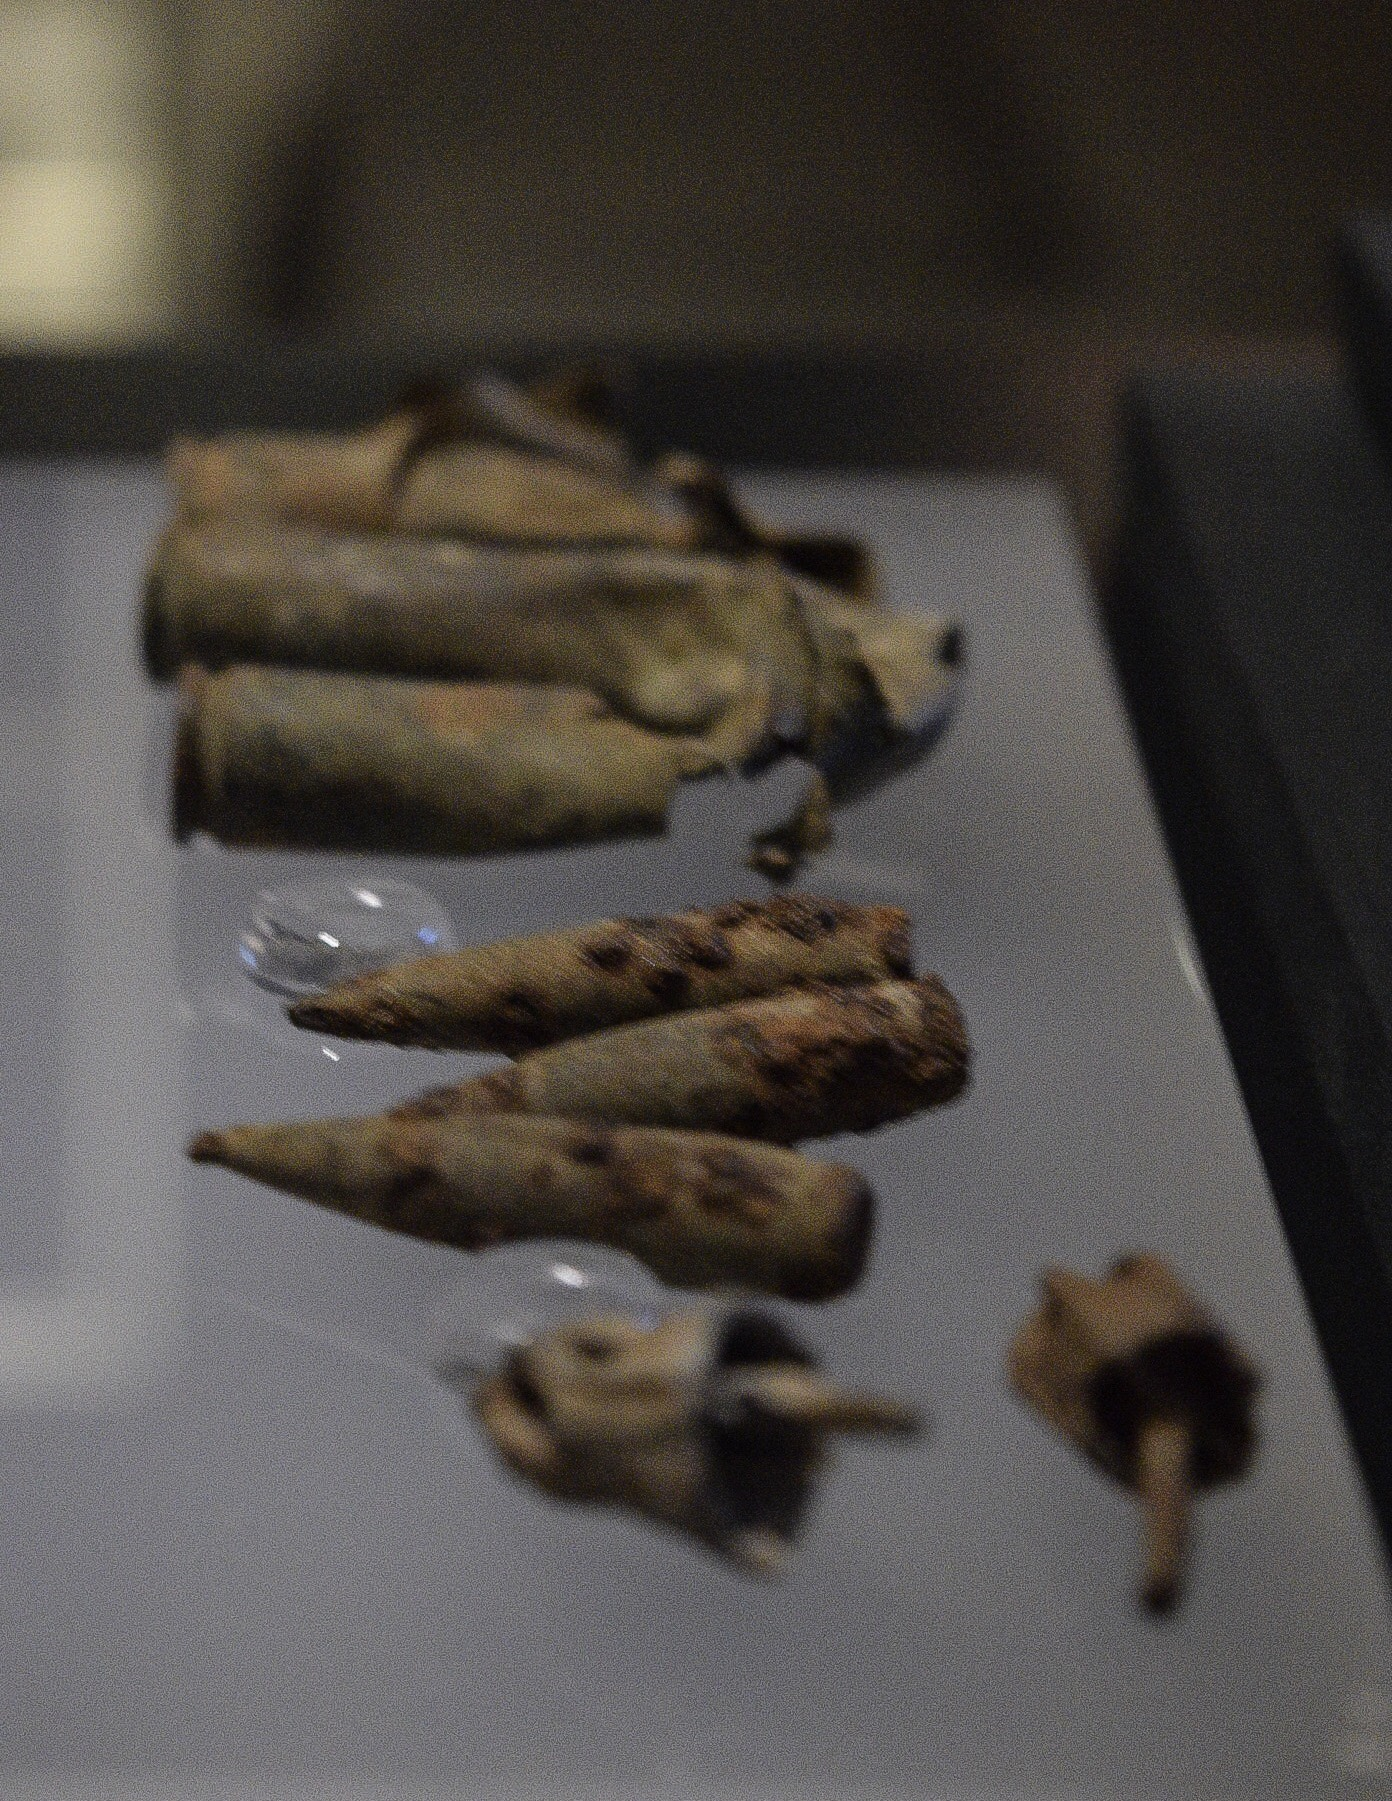 Handmade dreidels and bullets, found in one of the camp's mass graves